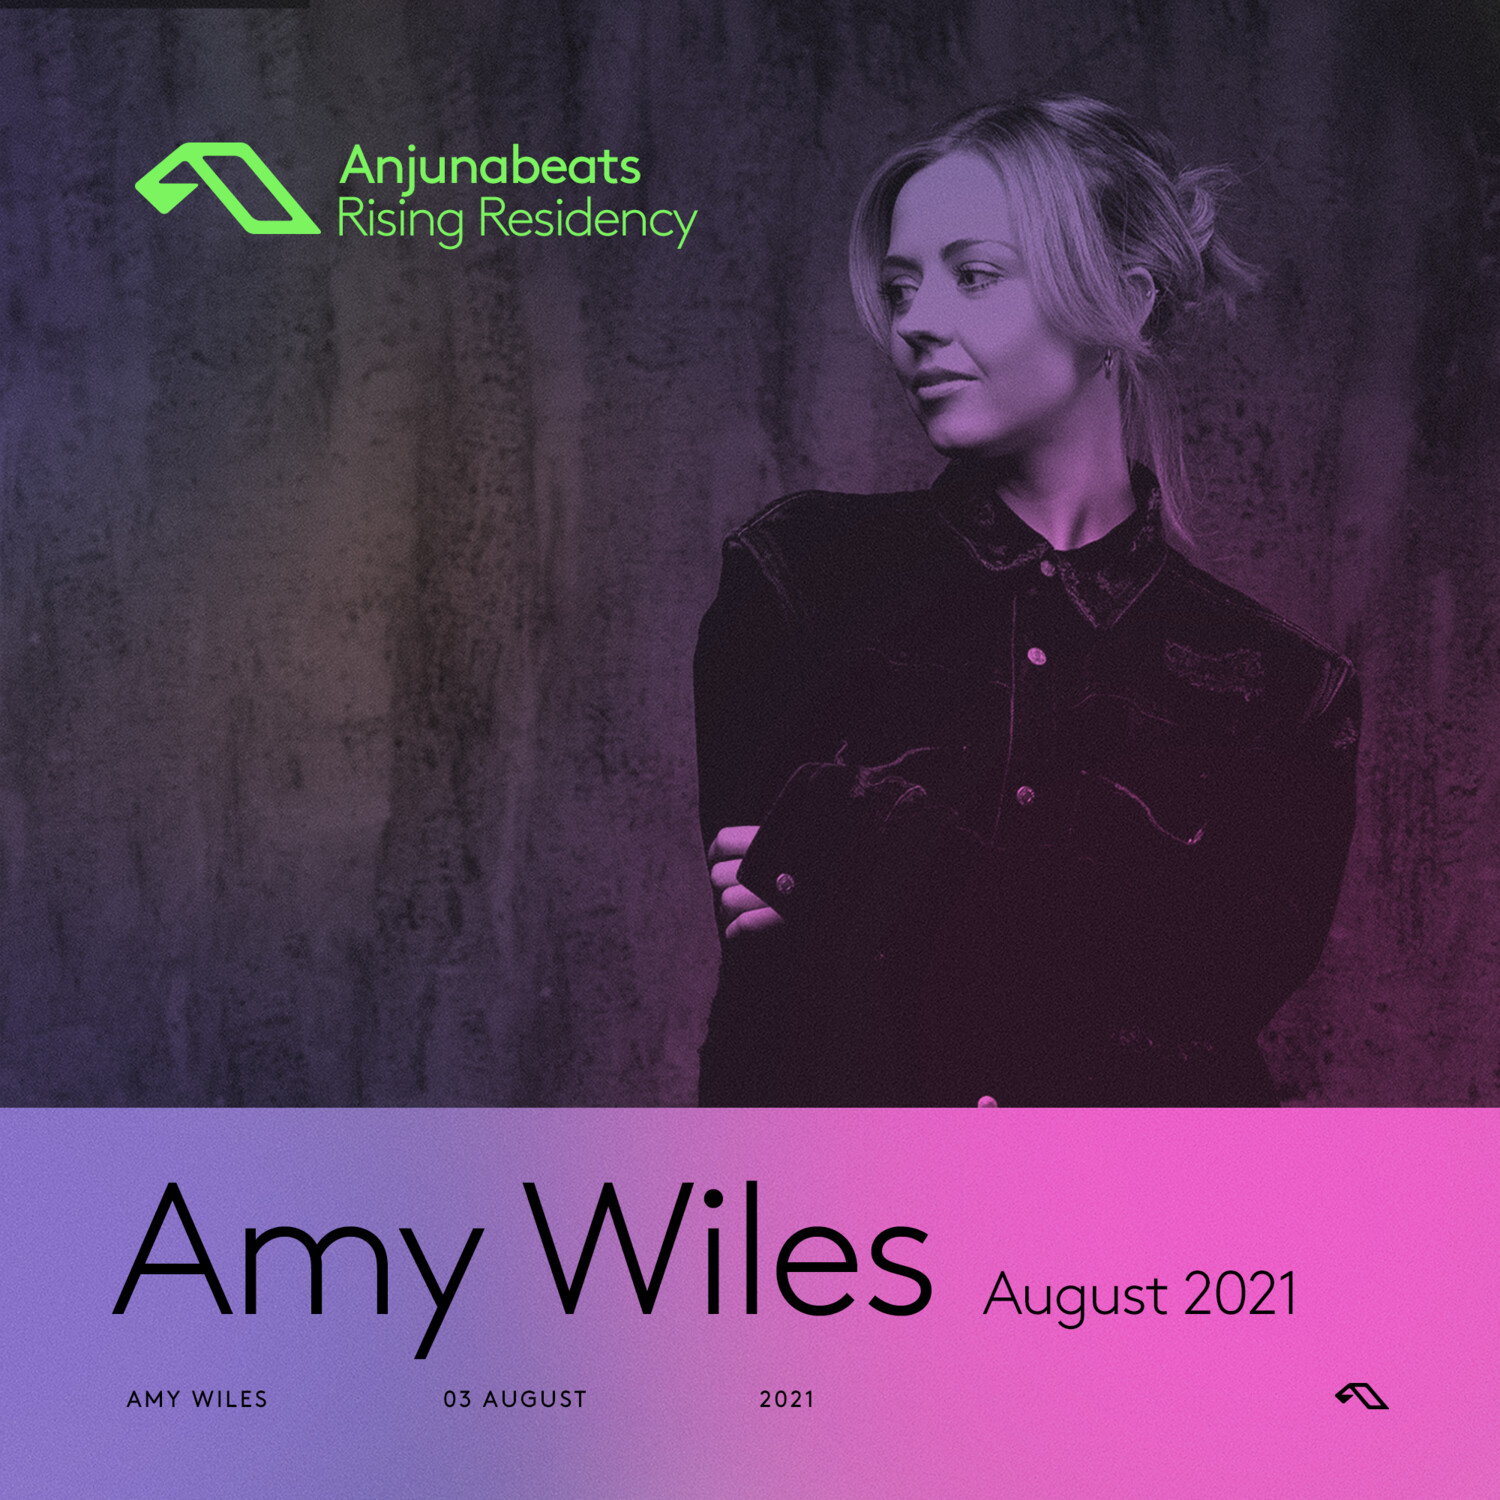 The Anjunabeats Rising Residency with Amy Wiles — August 2021